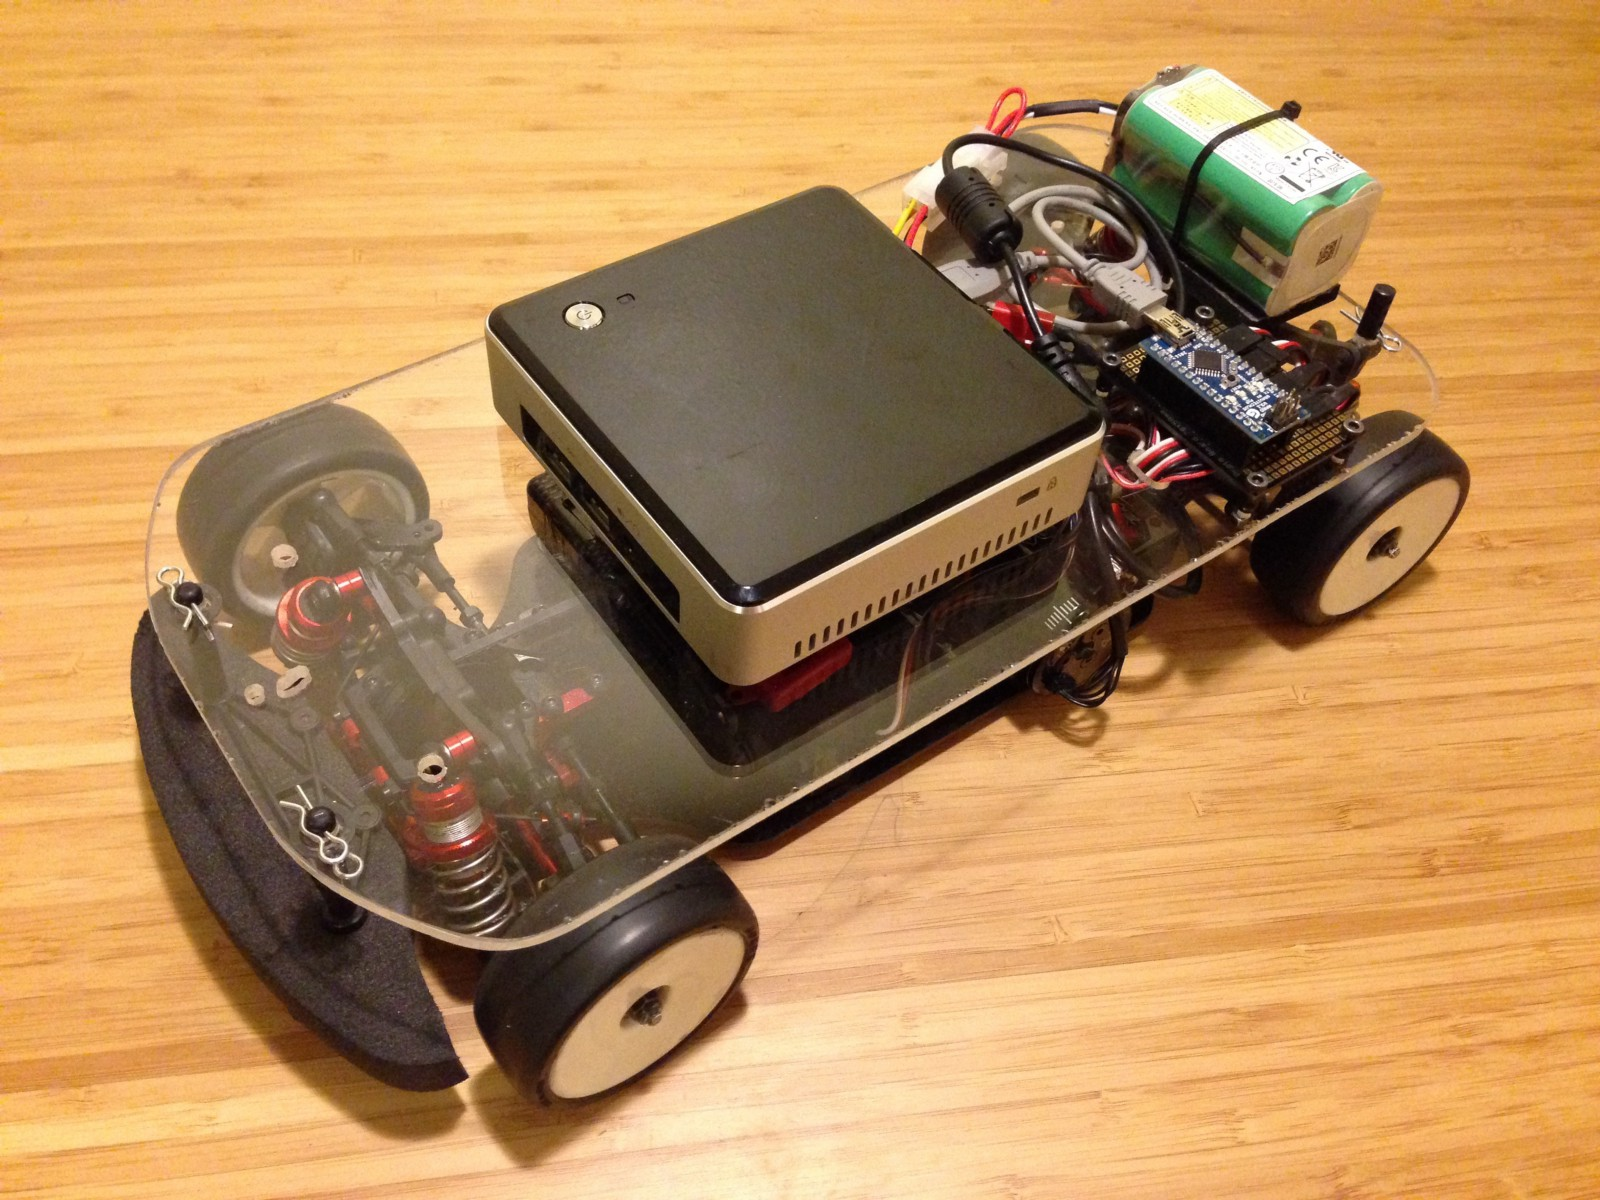 Ghost Ii Controlling An Rc Car With A Computer Hacker Noon Electronics Project How To Make Remote Control Old 4s Lipo Battery Power The Obc And Piece Of Acrylic Serve As Platform Is All Thats Needed For Be Mobile